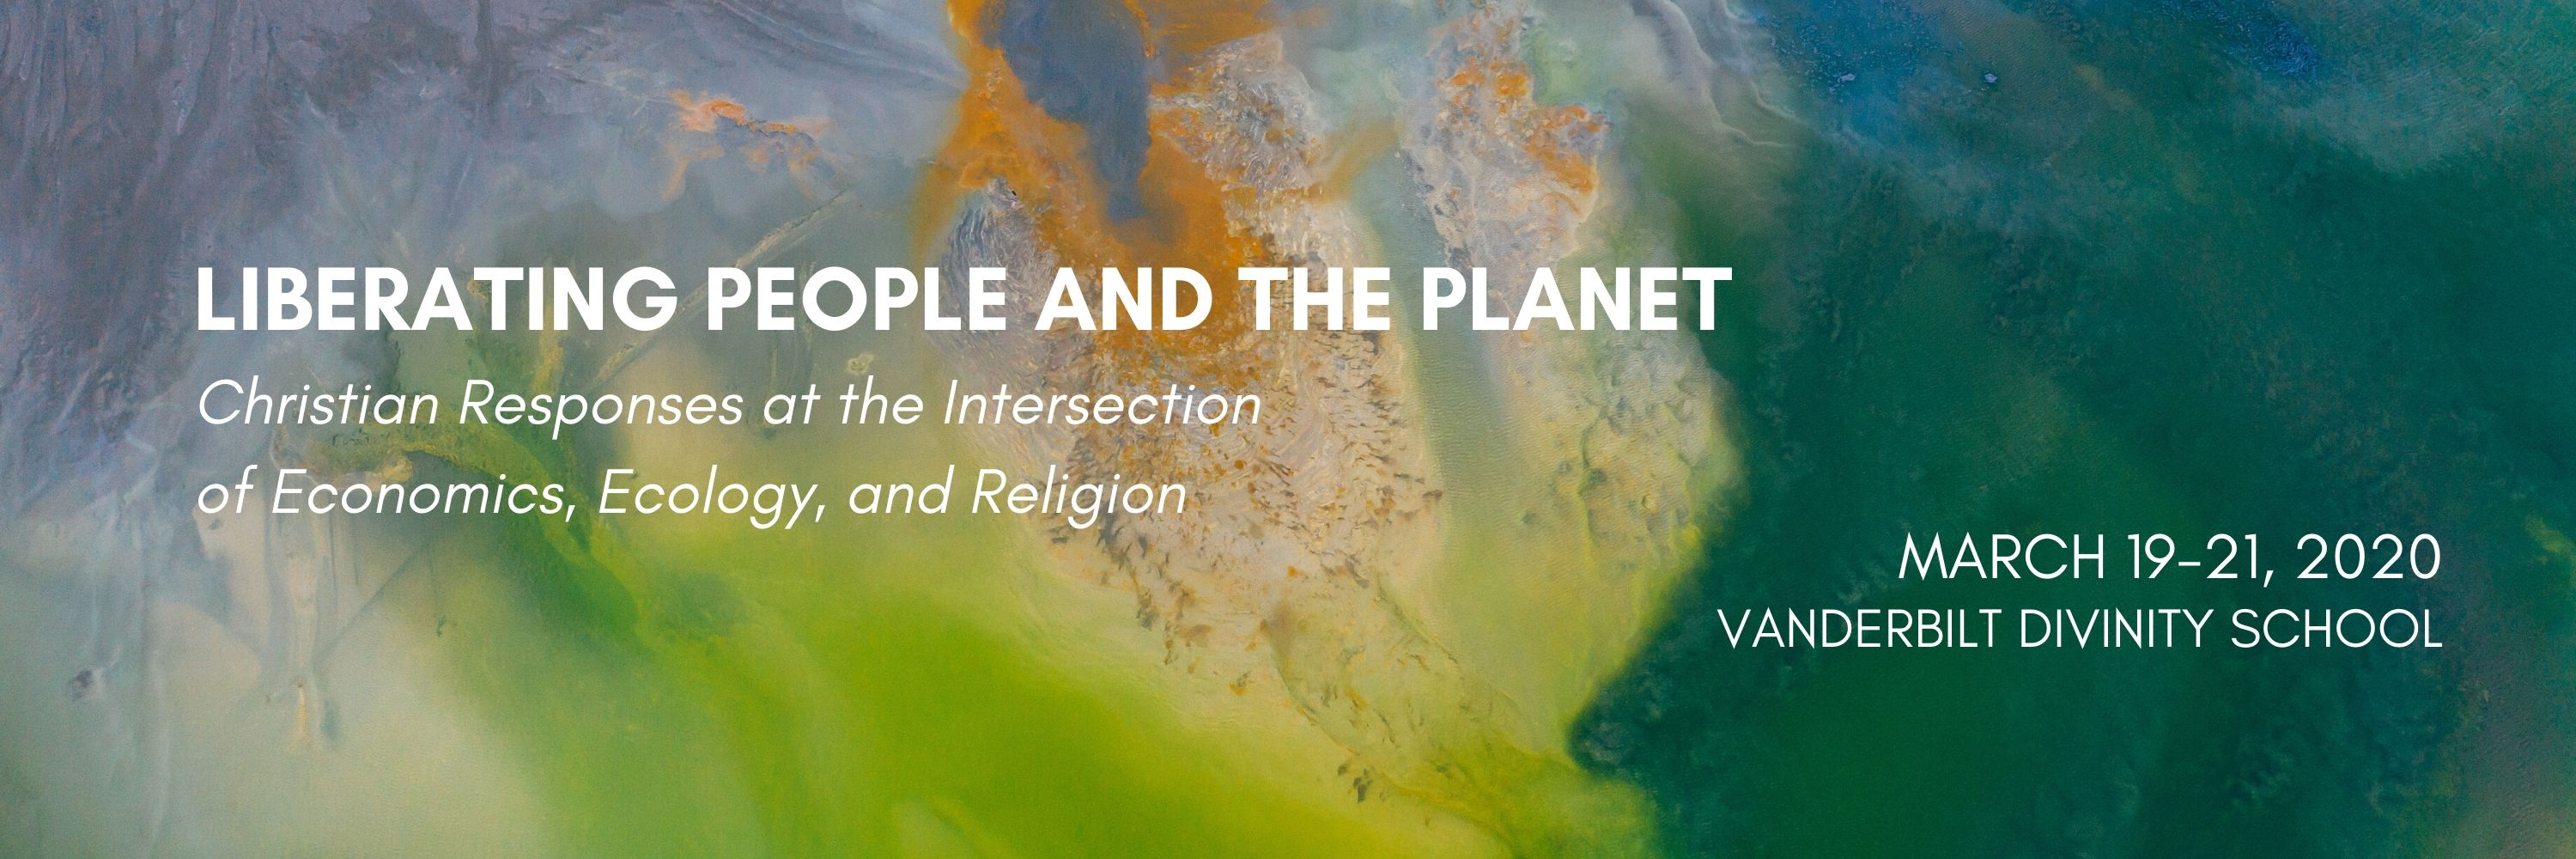 Liberating People and Planet Conference